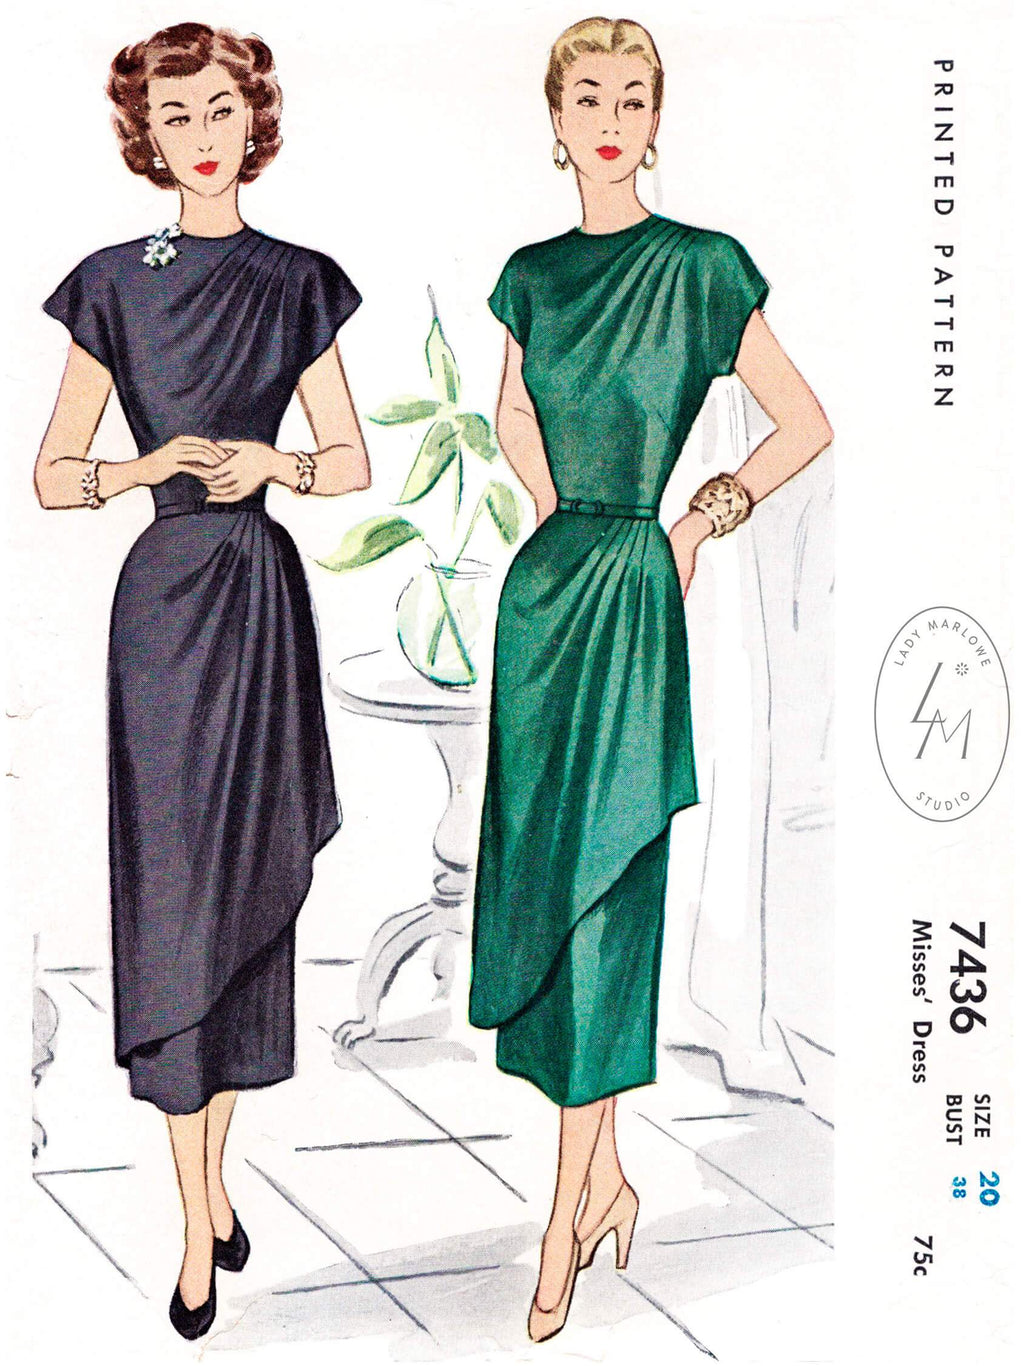 McCall 7436 1940s cocktail dress vintage sewing pattern reproduction